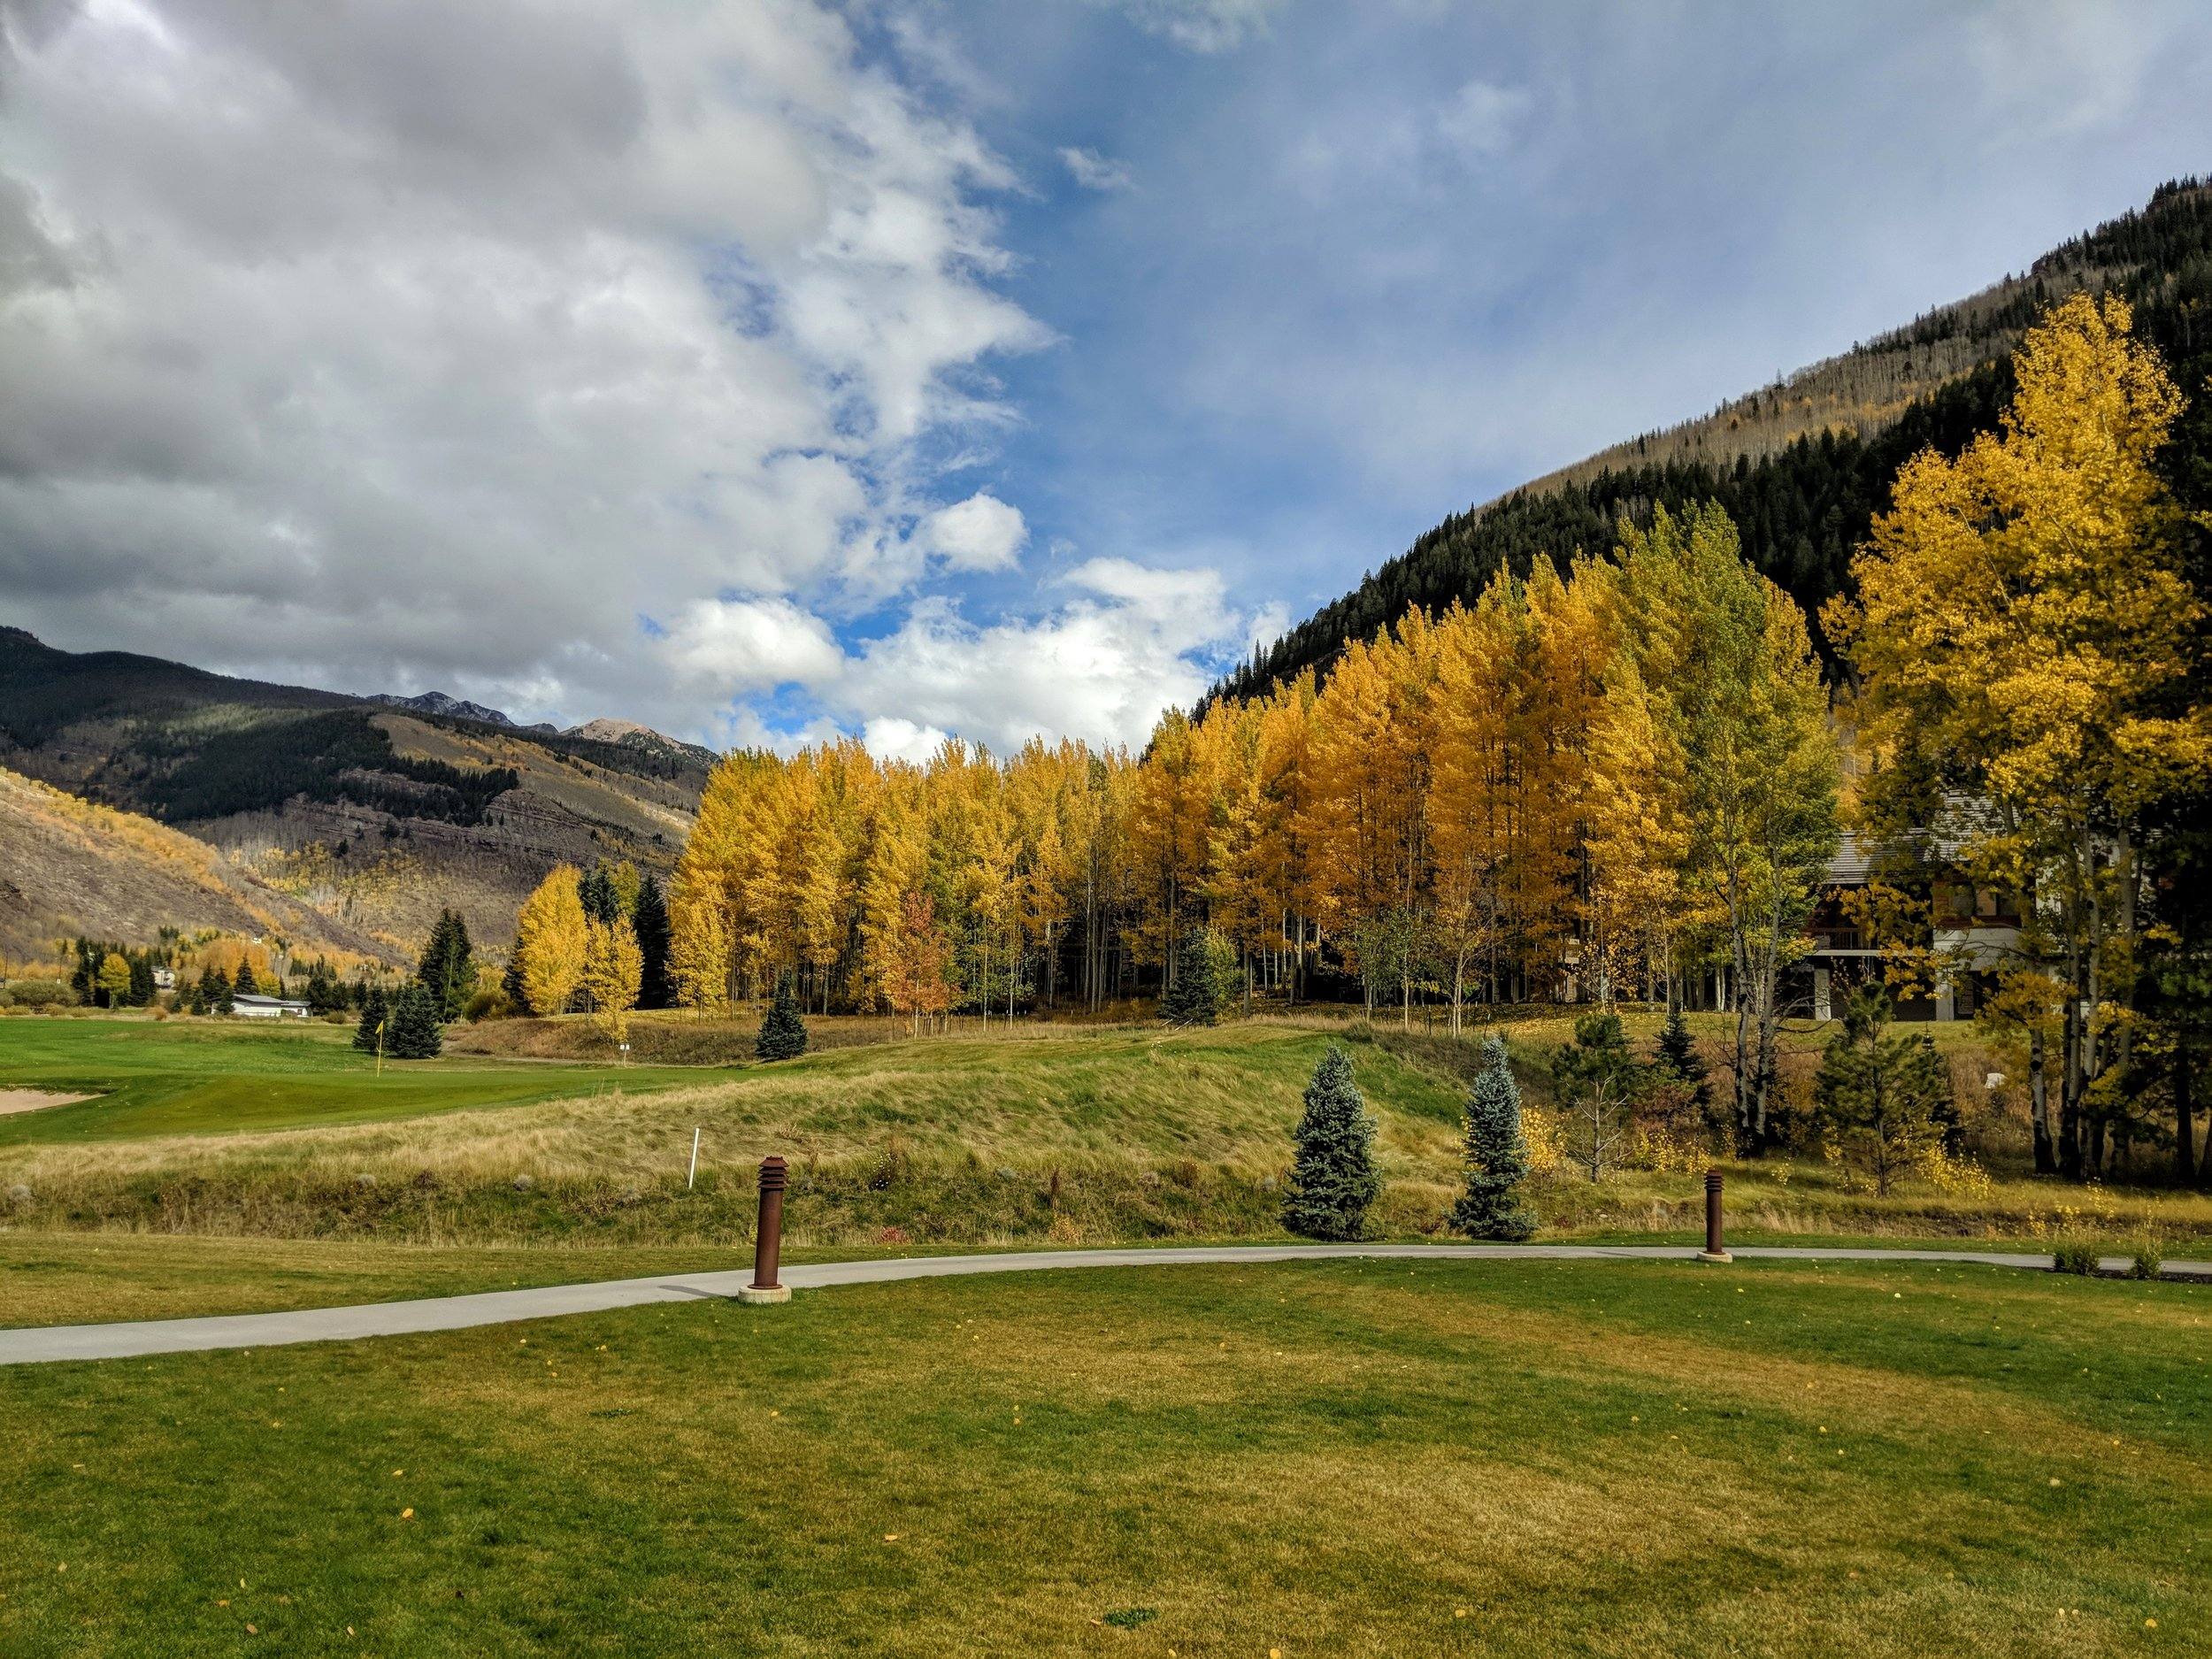 Flute and Guitar Wedding Ceremony Music at the Vail Golf Club in Vail, Colorado